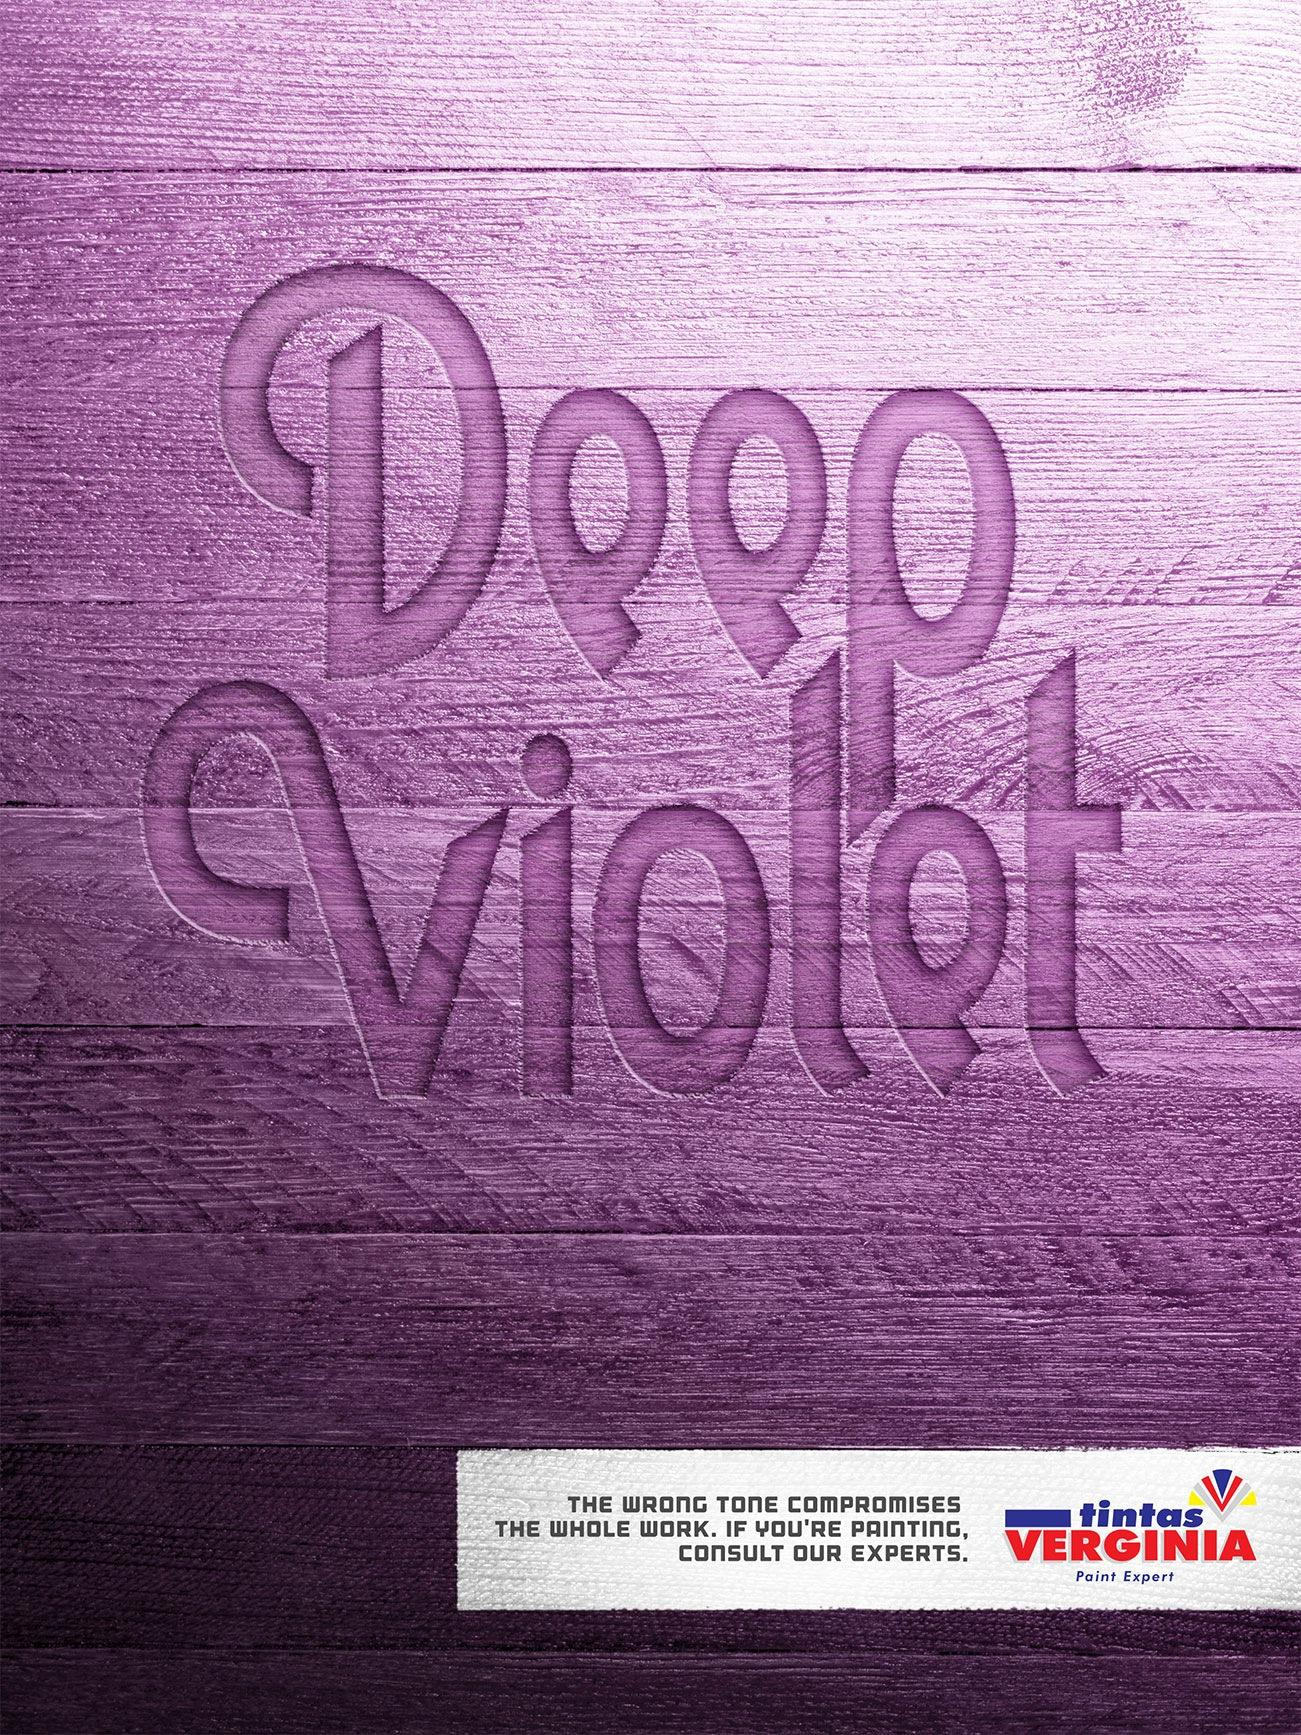 Tintas Verginia Print Ad -  Colors of Rock, 4